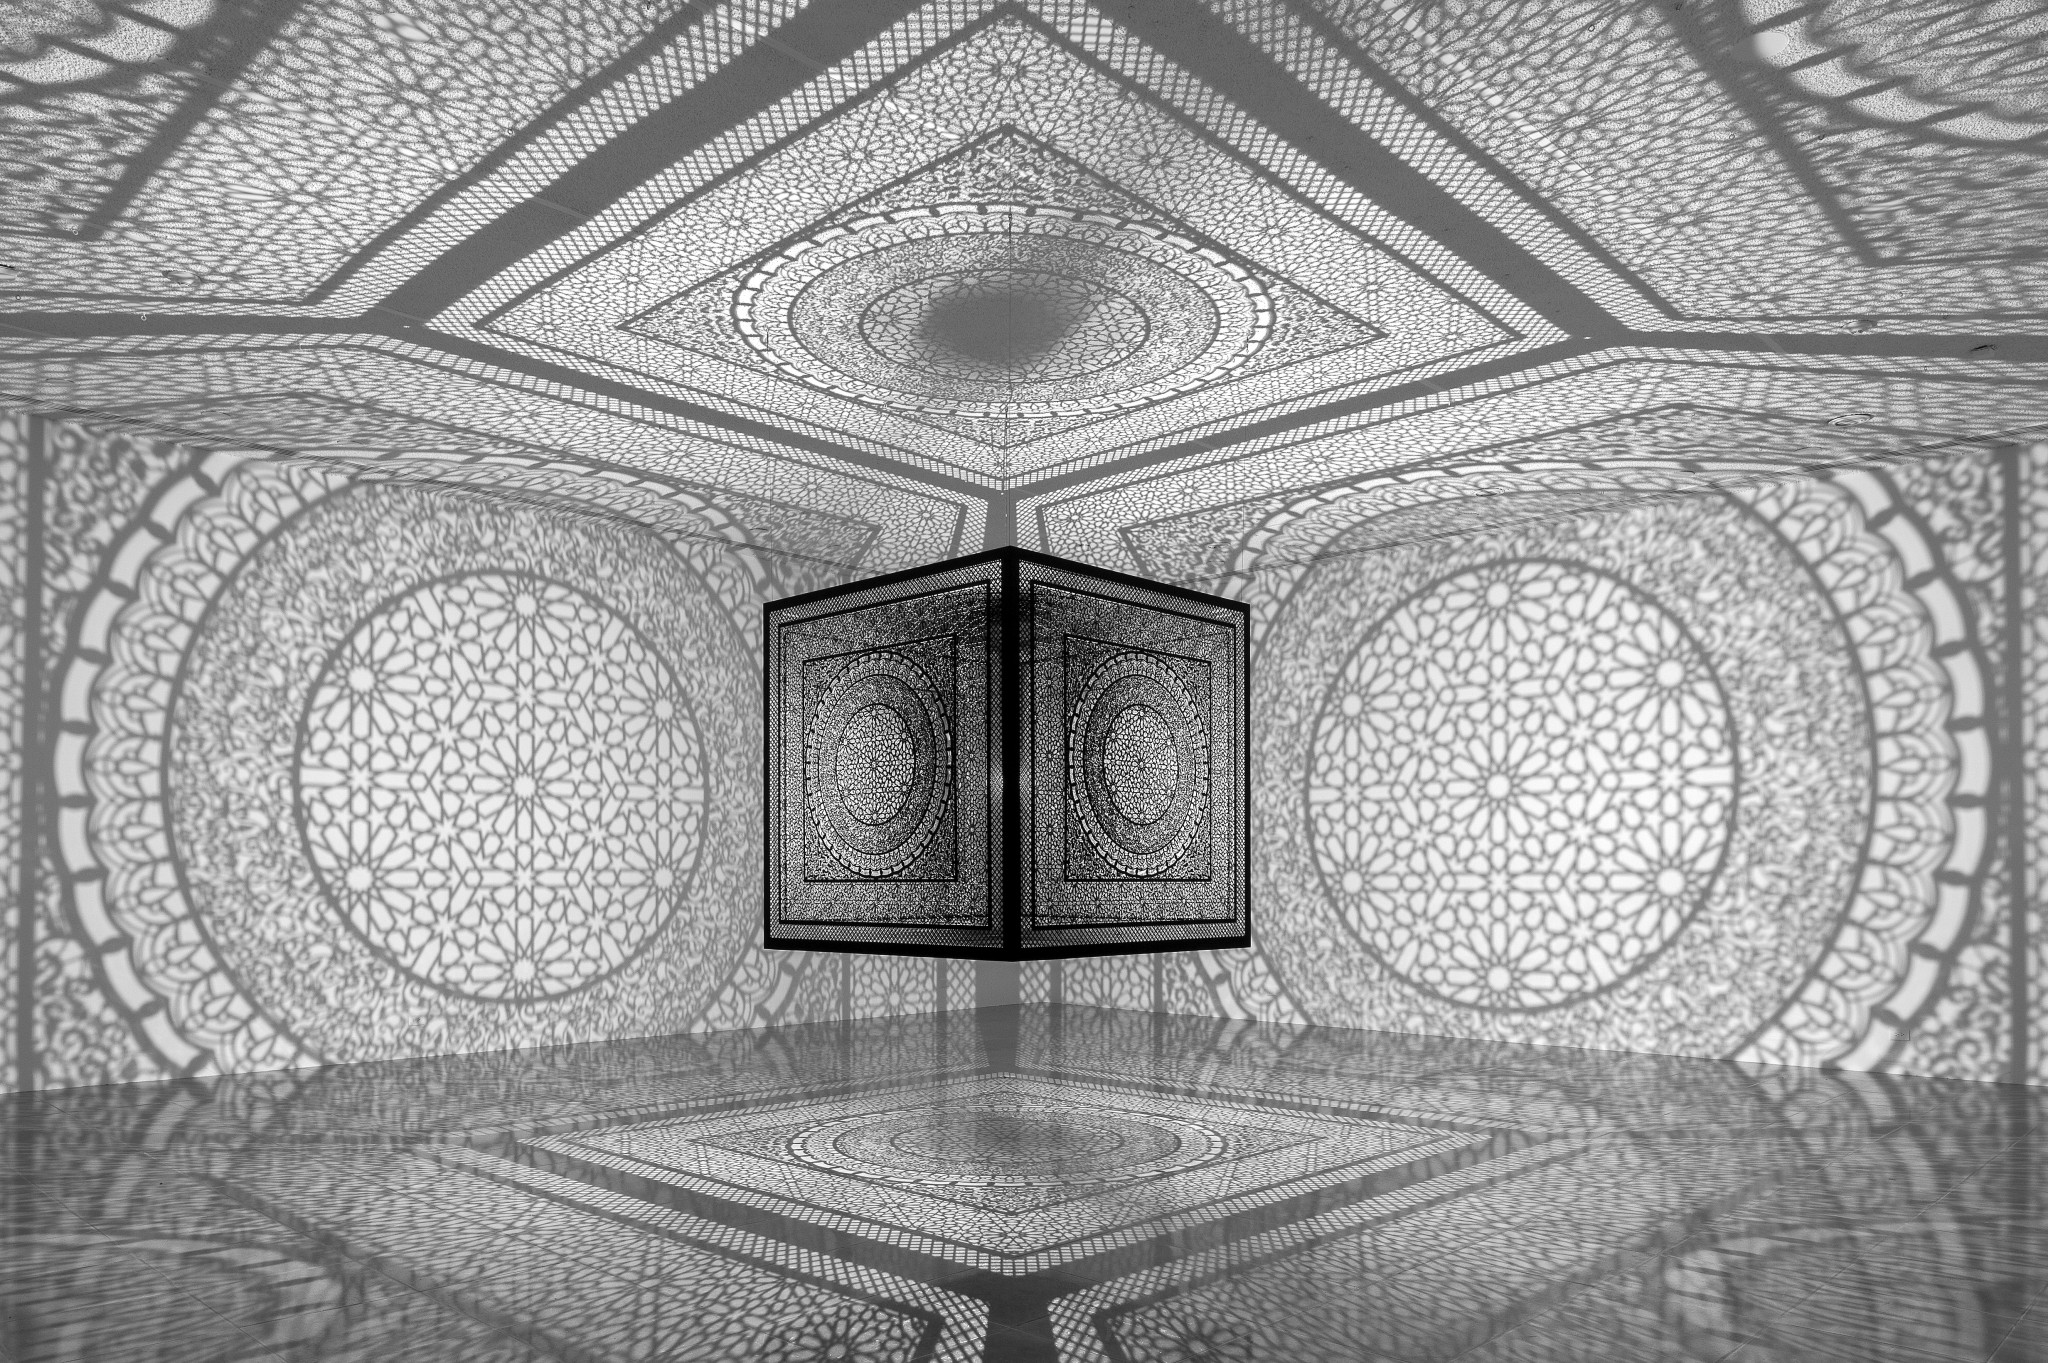 Anila Agha, Intersections, 2013, site-specific installation at Rice University Art Gallery, 2015.<br />(Photo by Nash Baker)